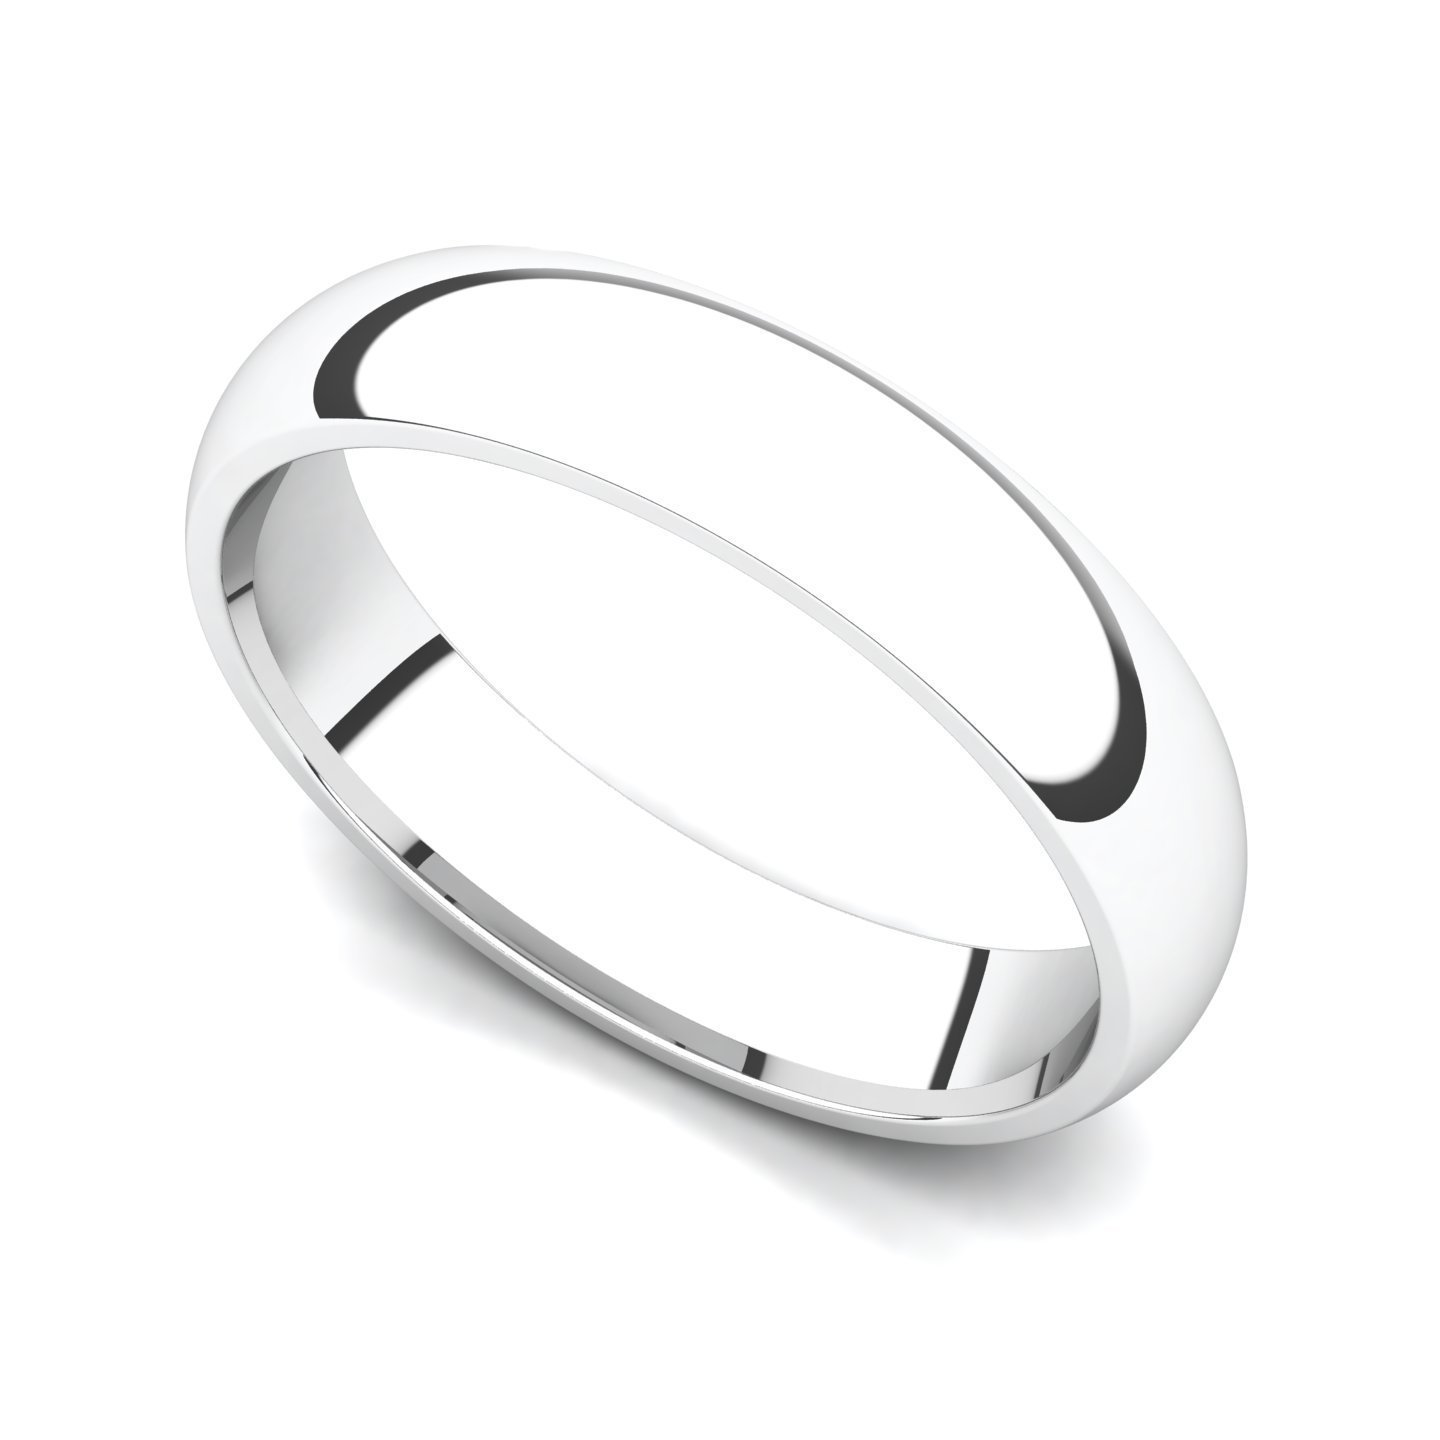 14k White Gold 4mm Classic Plain Comfort Fit Wedding Band Ring, 10.5 by Juno Jewelry (Image #1)